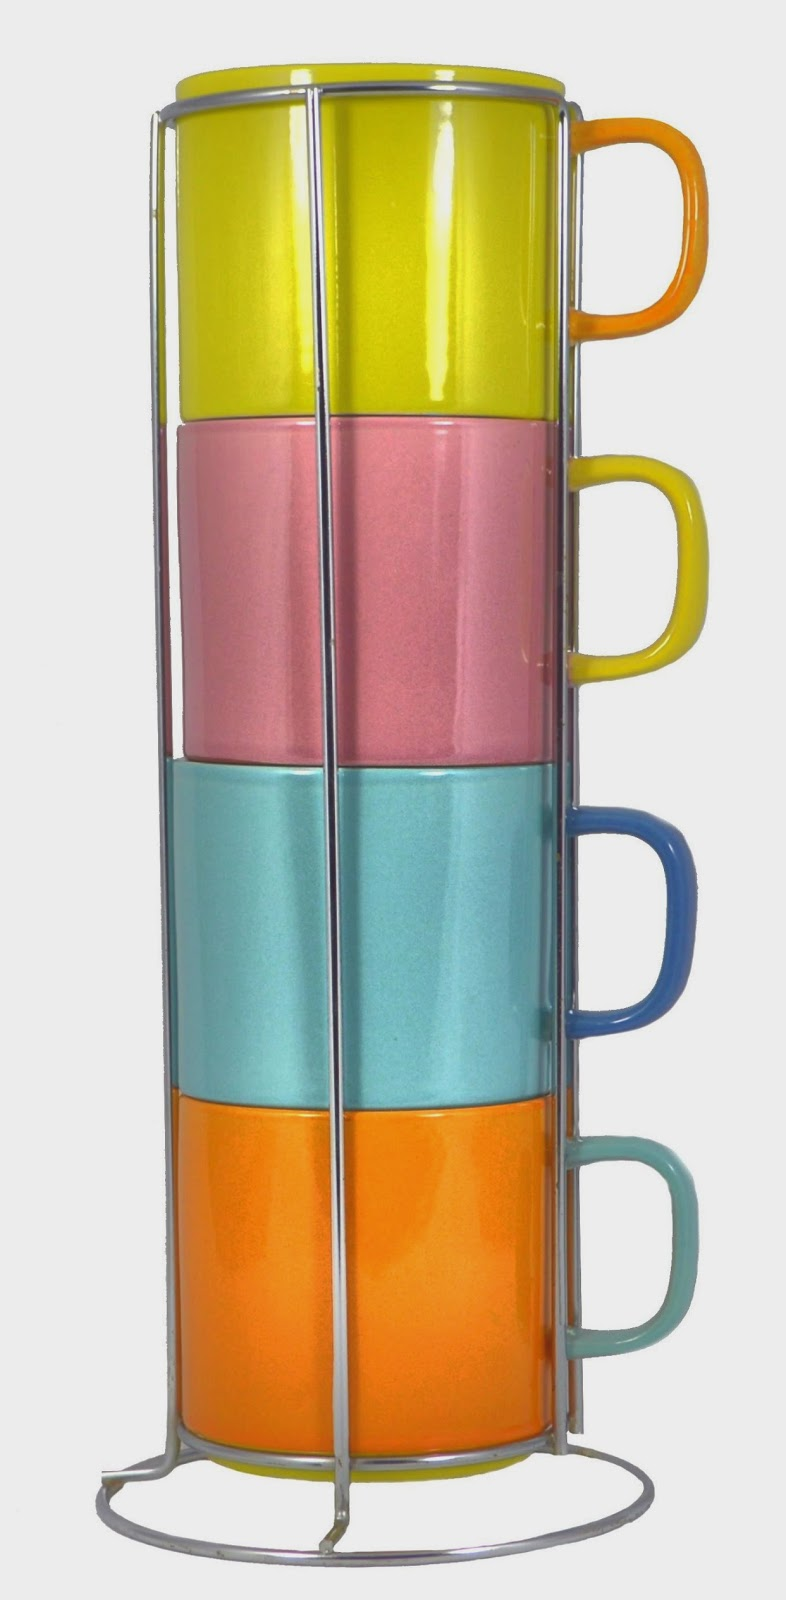 http://www.amazon.com/Francois-Mimi-Stacking-Coffee-Multi-Colored/dp/B00SK5J4BS/ref=cm_rdp_product